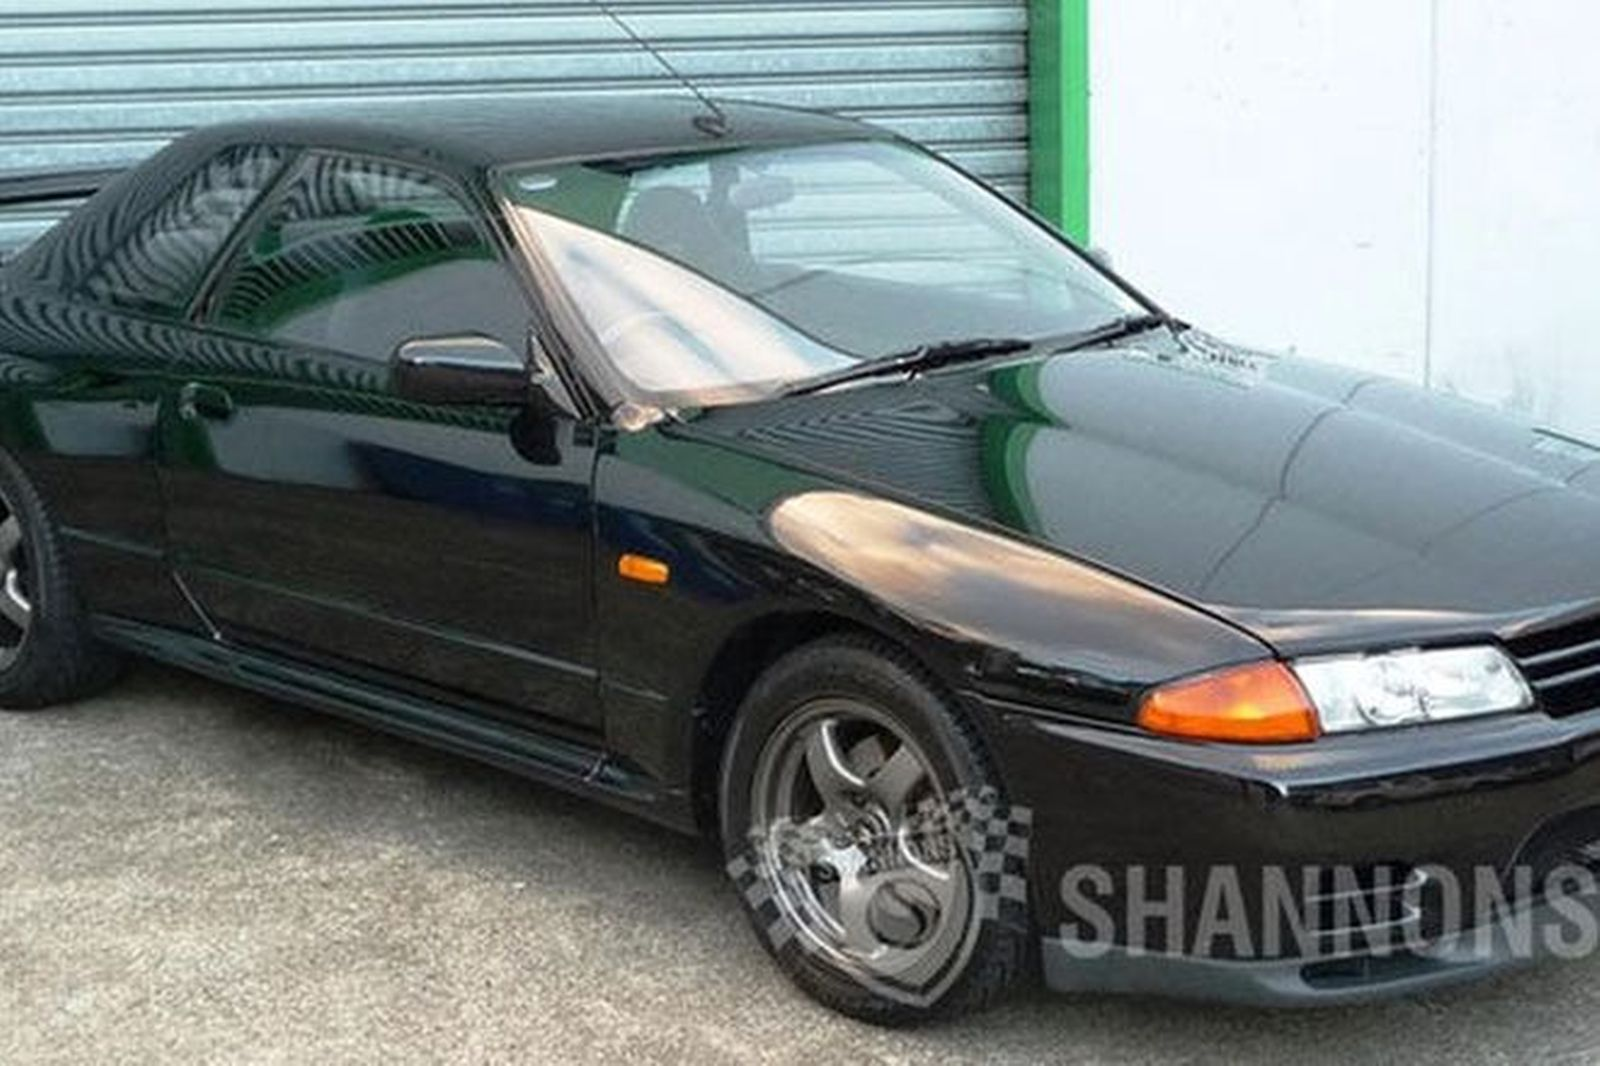 sold nissan skyline r32 gt r coupe 1 of 100 australian delivery auctions lot 9 shannons. Black Bedroom Furniture Sets. Home Design Ideas